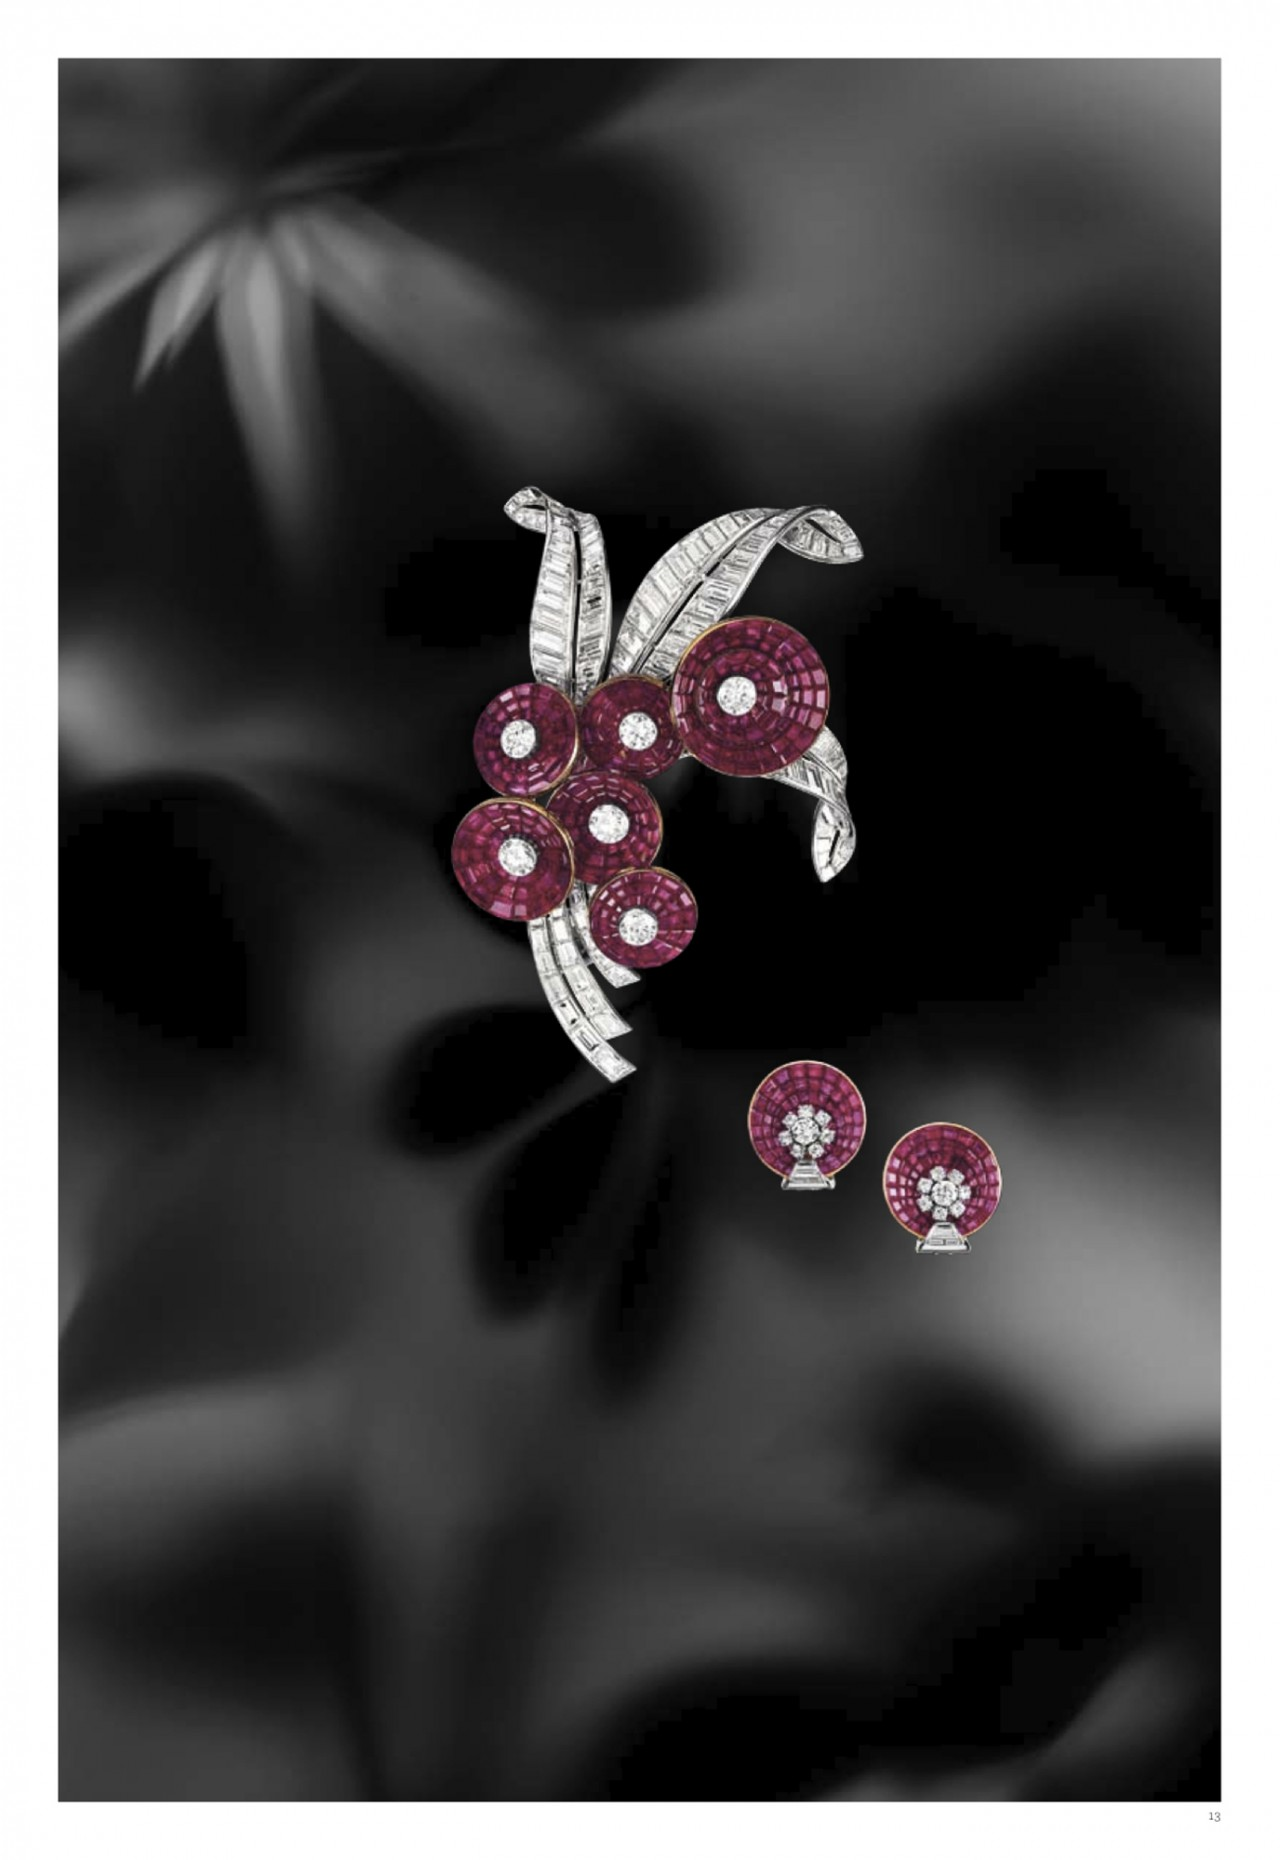 Patrick Gries Van Cleef &#038; Arpels: <br/>The spirit of beauty